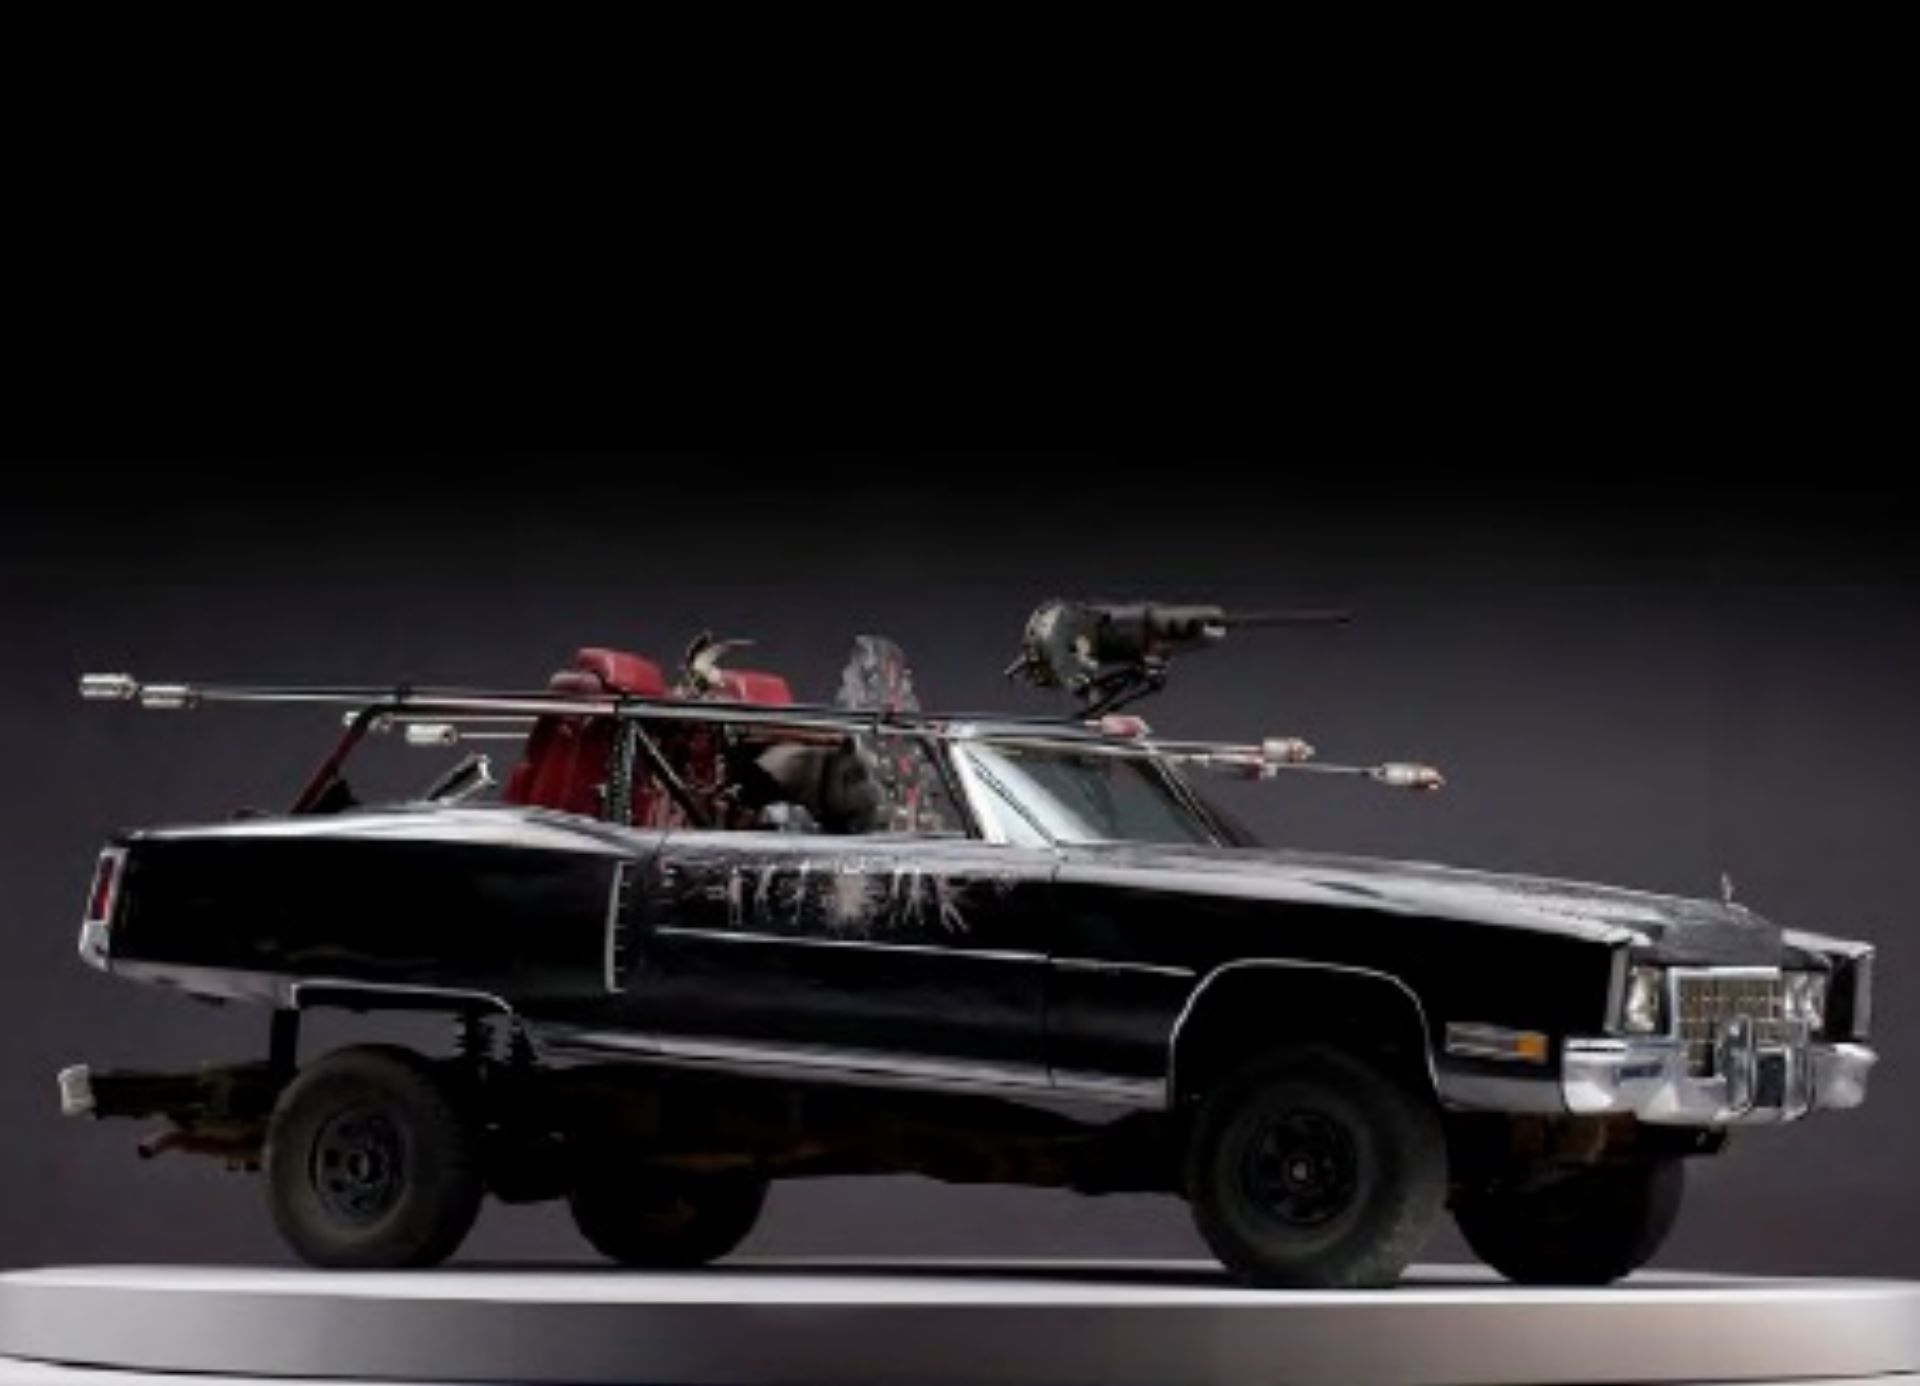 Mad-Max-Fury-Road-cars-for-sale-15